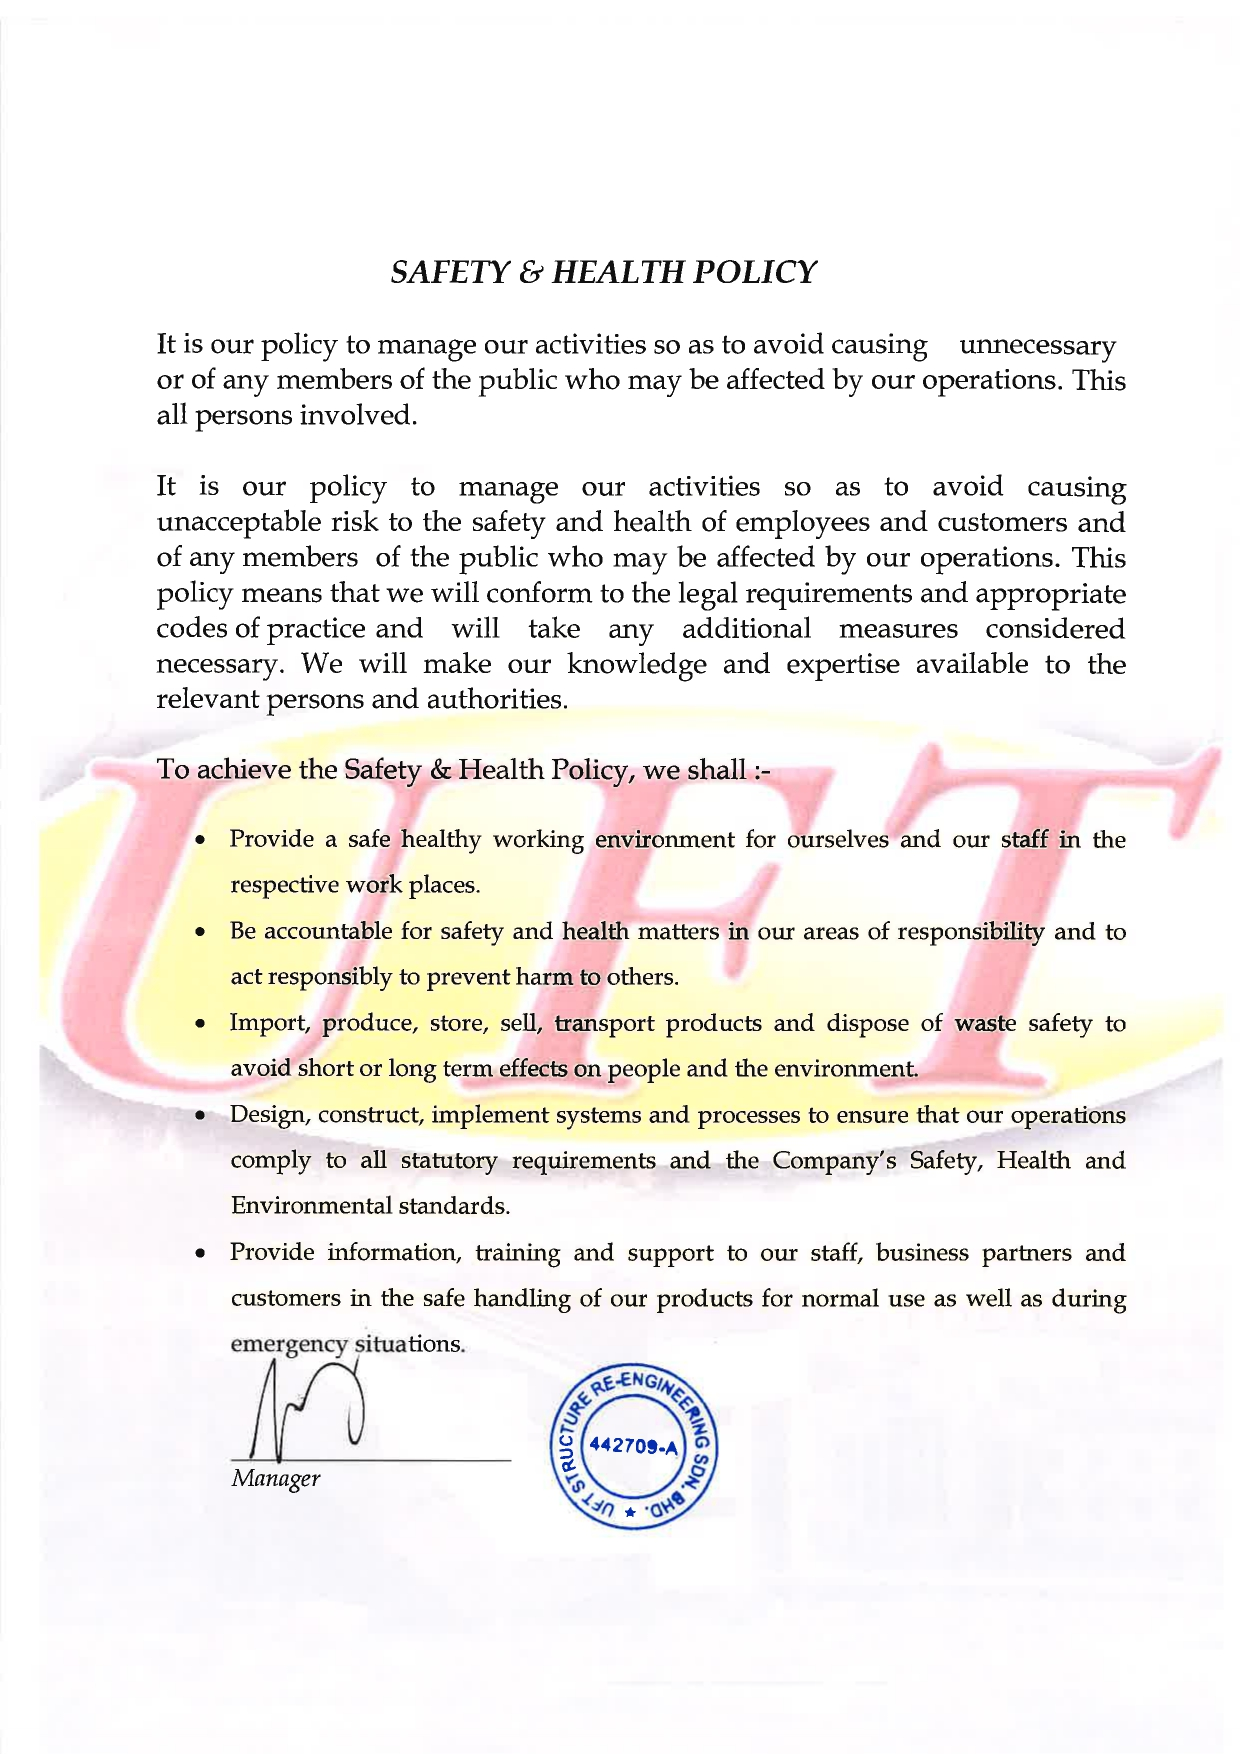 SAFETY & HEALTH POLICY 2021_page-0001